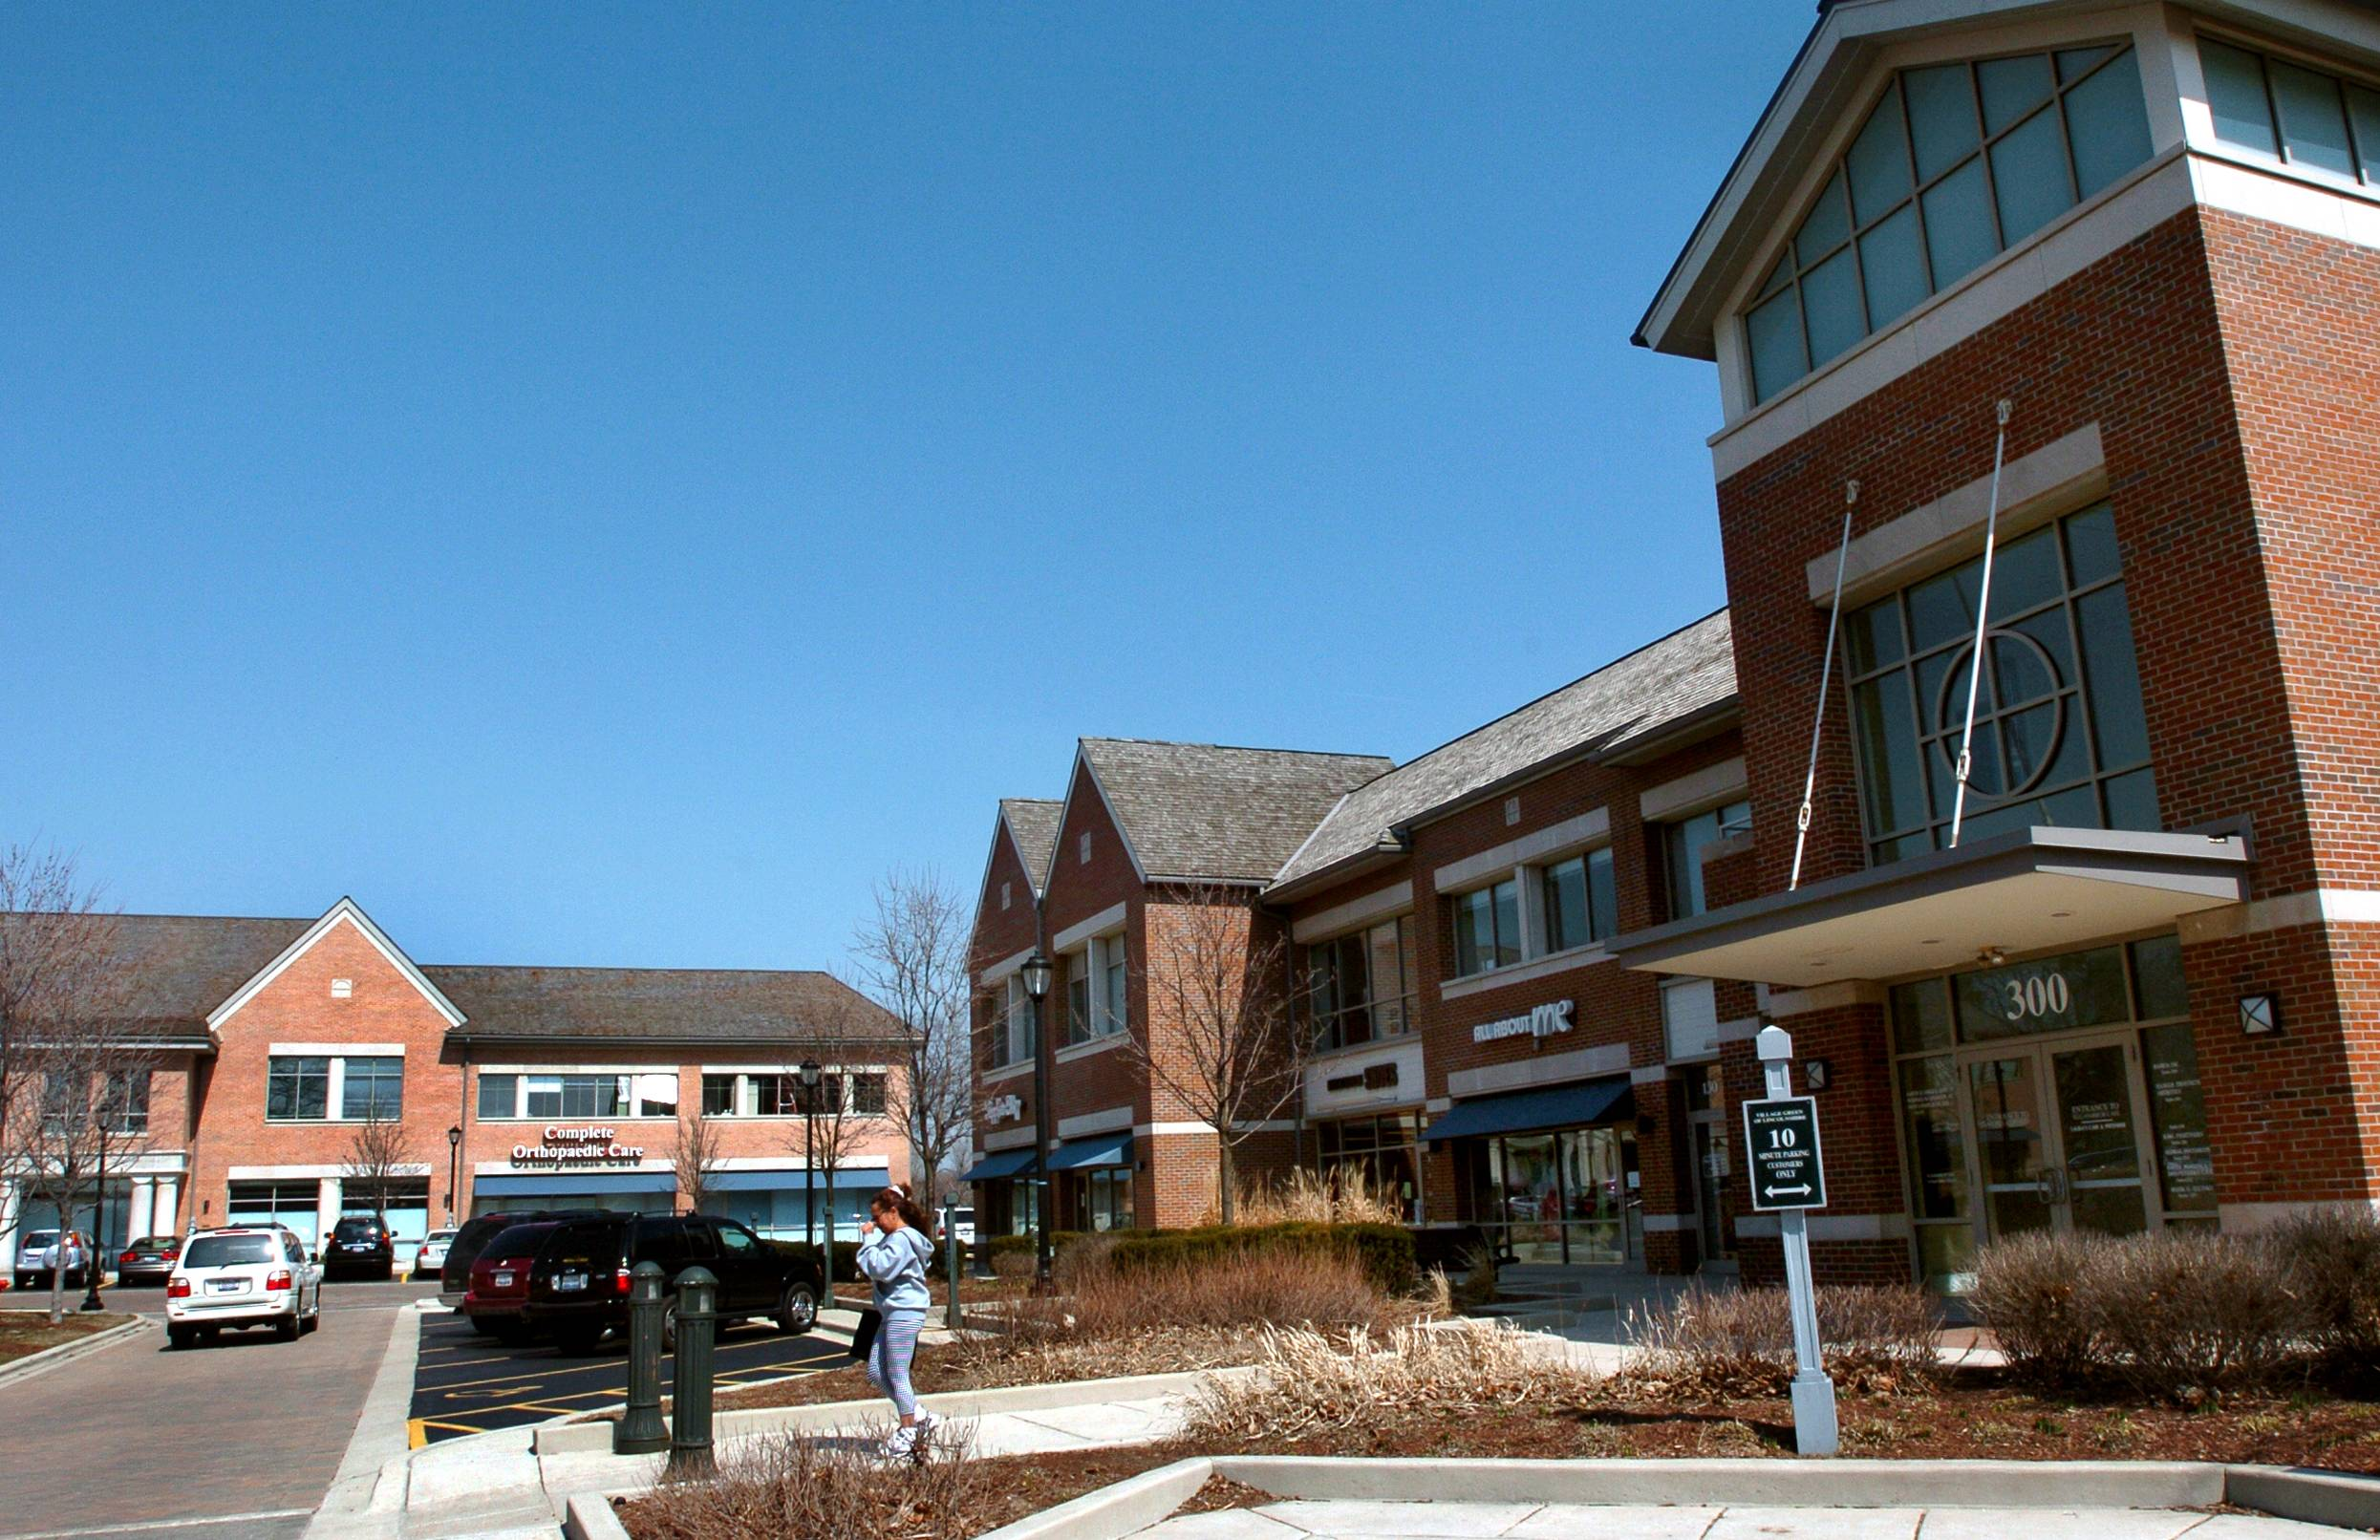 The Village Green shopping center is one of the main retail attractions along Milwaukee Avenue in Lincolnshire. Village officials are considering hiring a consultant to craft a development plan for the retail, office and residential developments along the busy road.